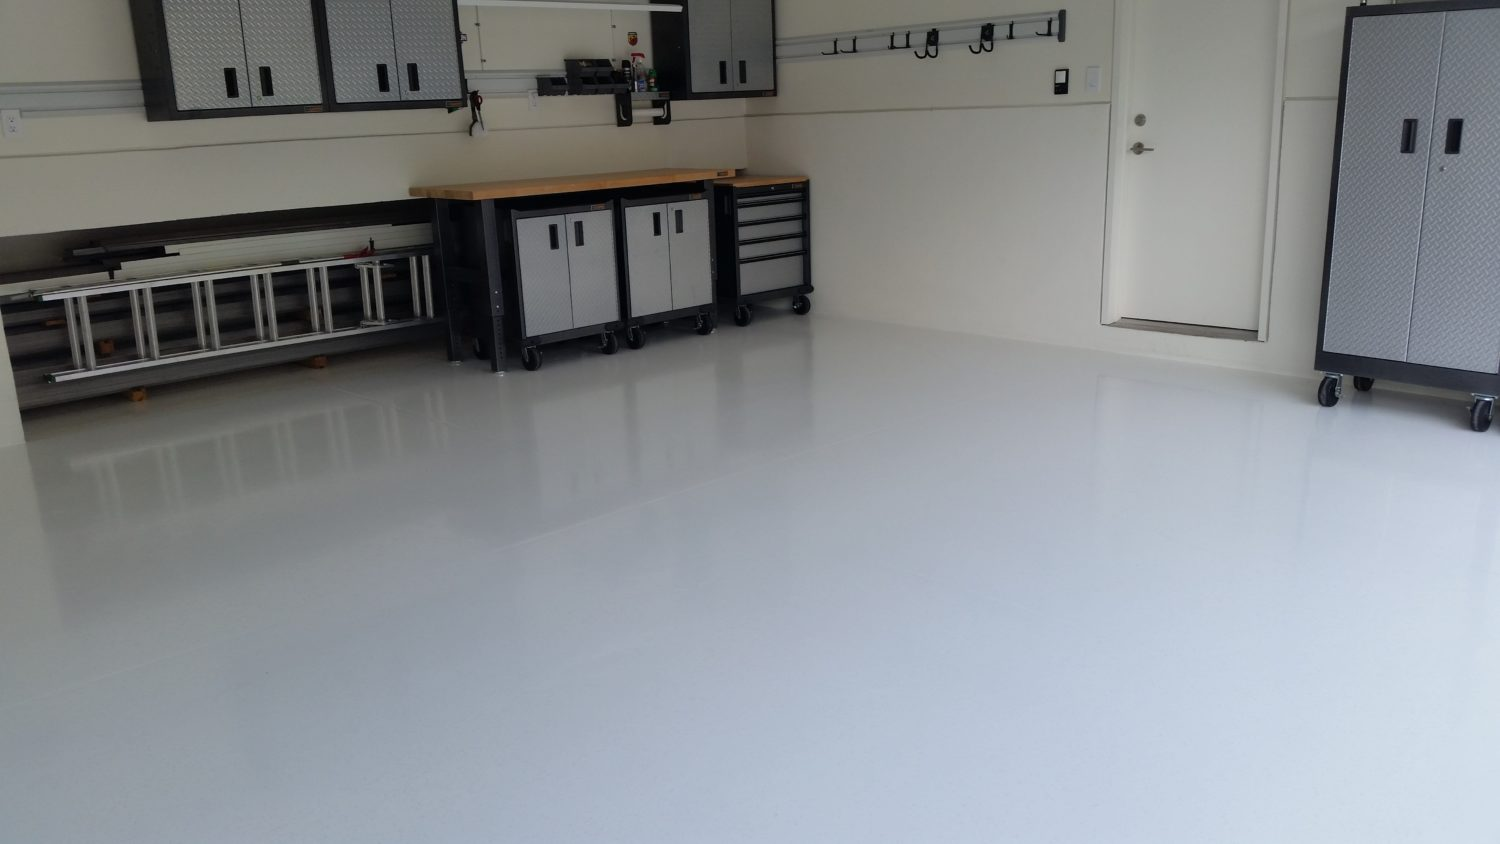 poxy Flooring are Floor oating ompany Polishing & Staining - ^